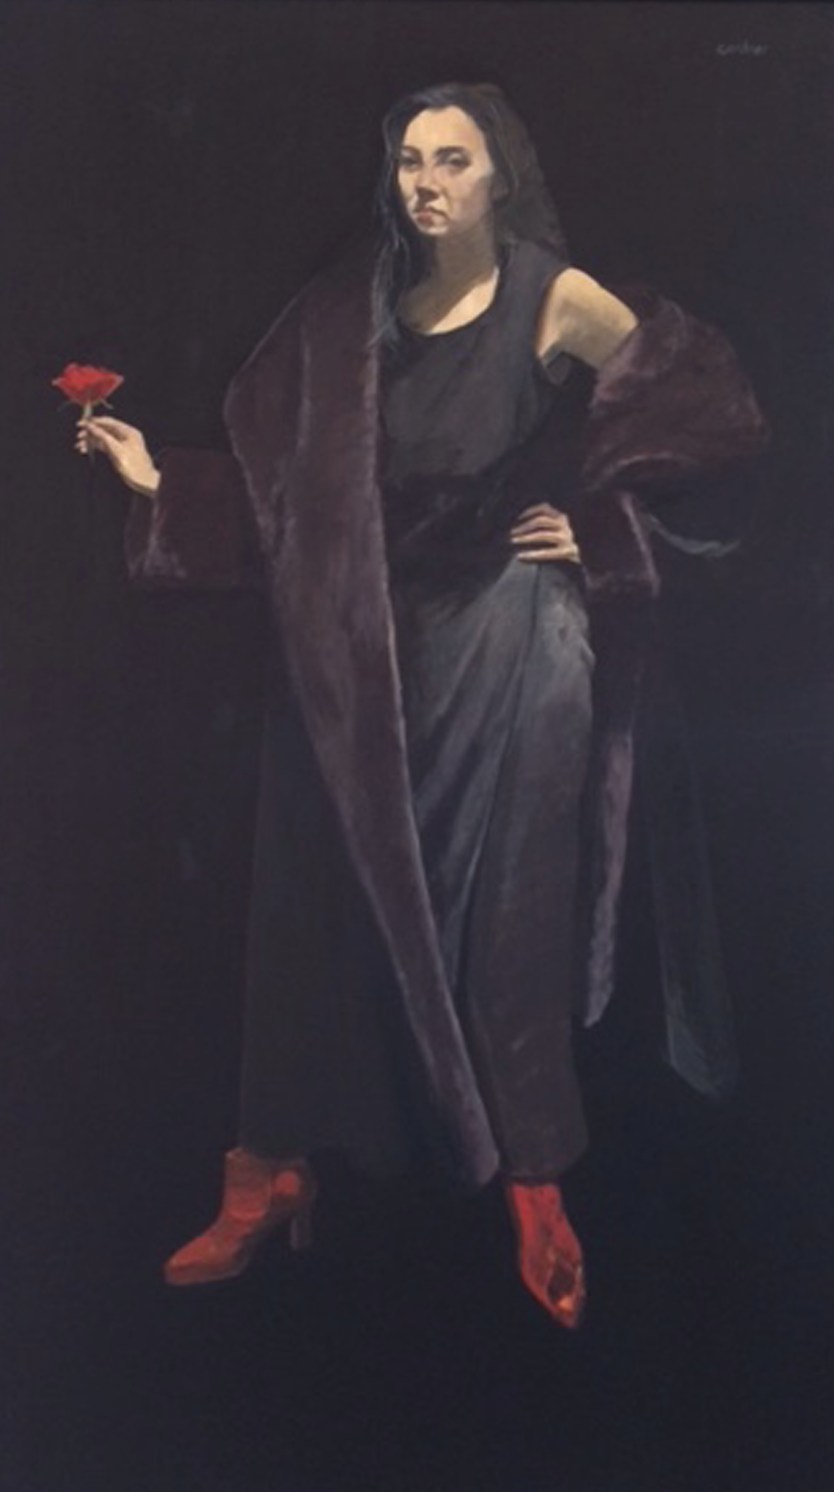 Artist: Alexandra Gardner  Title: The Rose  Medium: Oil on canvas  Size: 150 x 80 cm